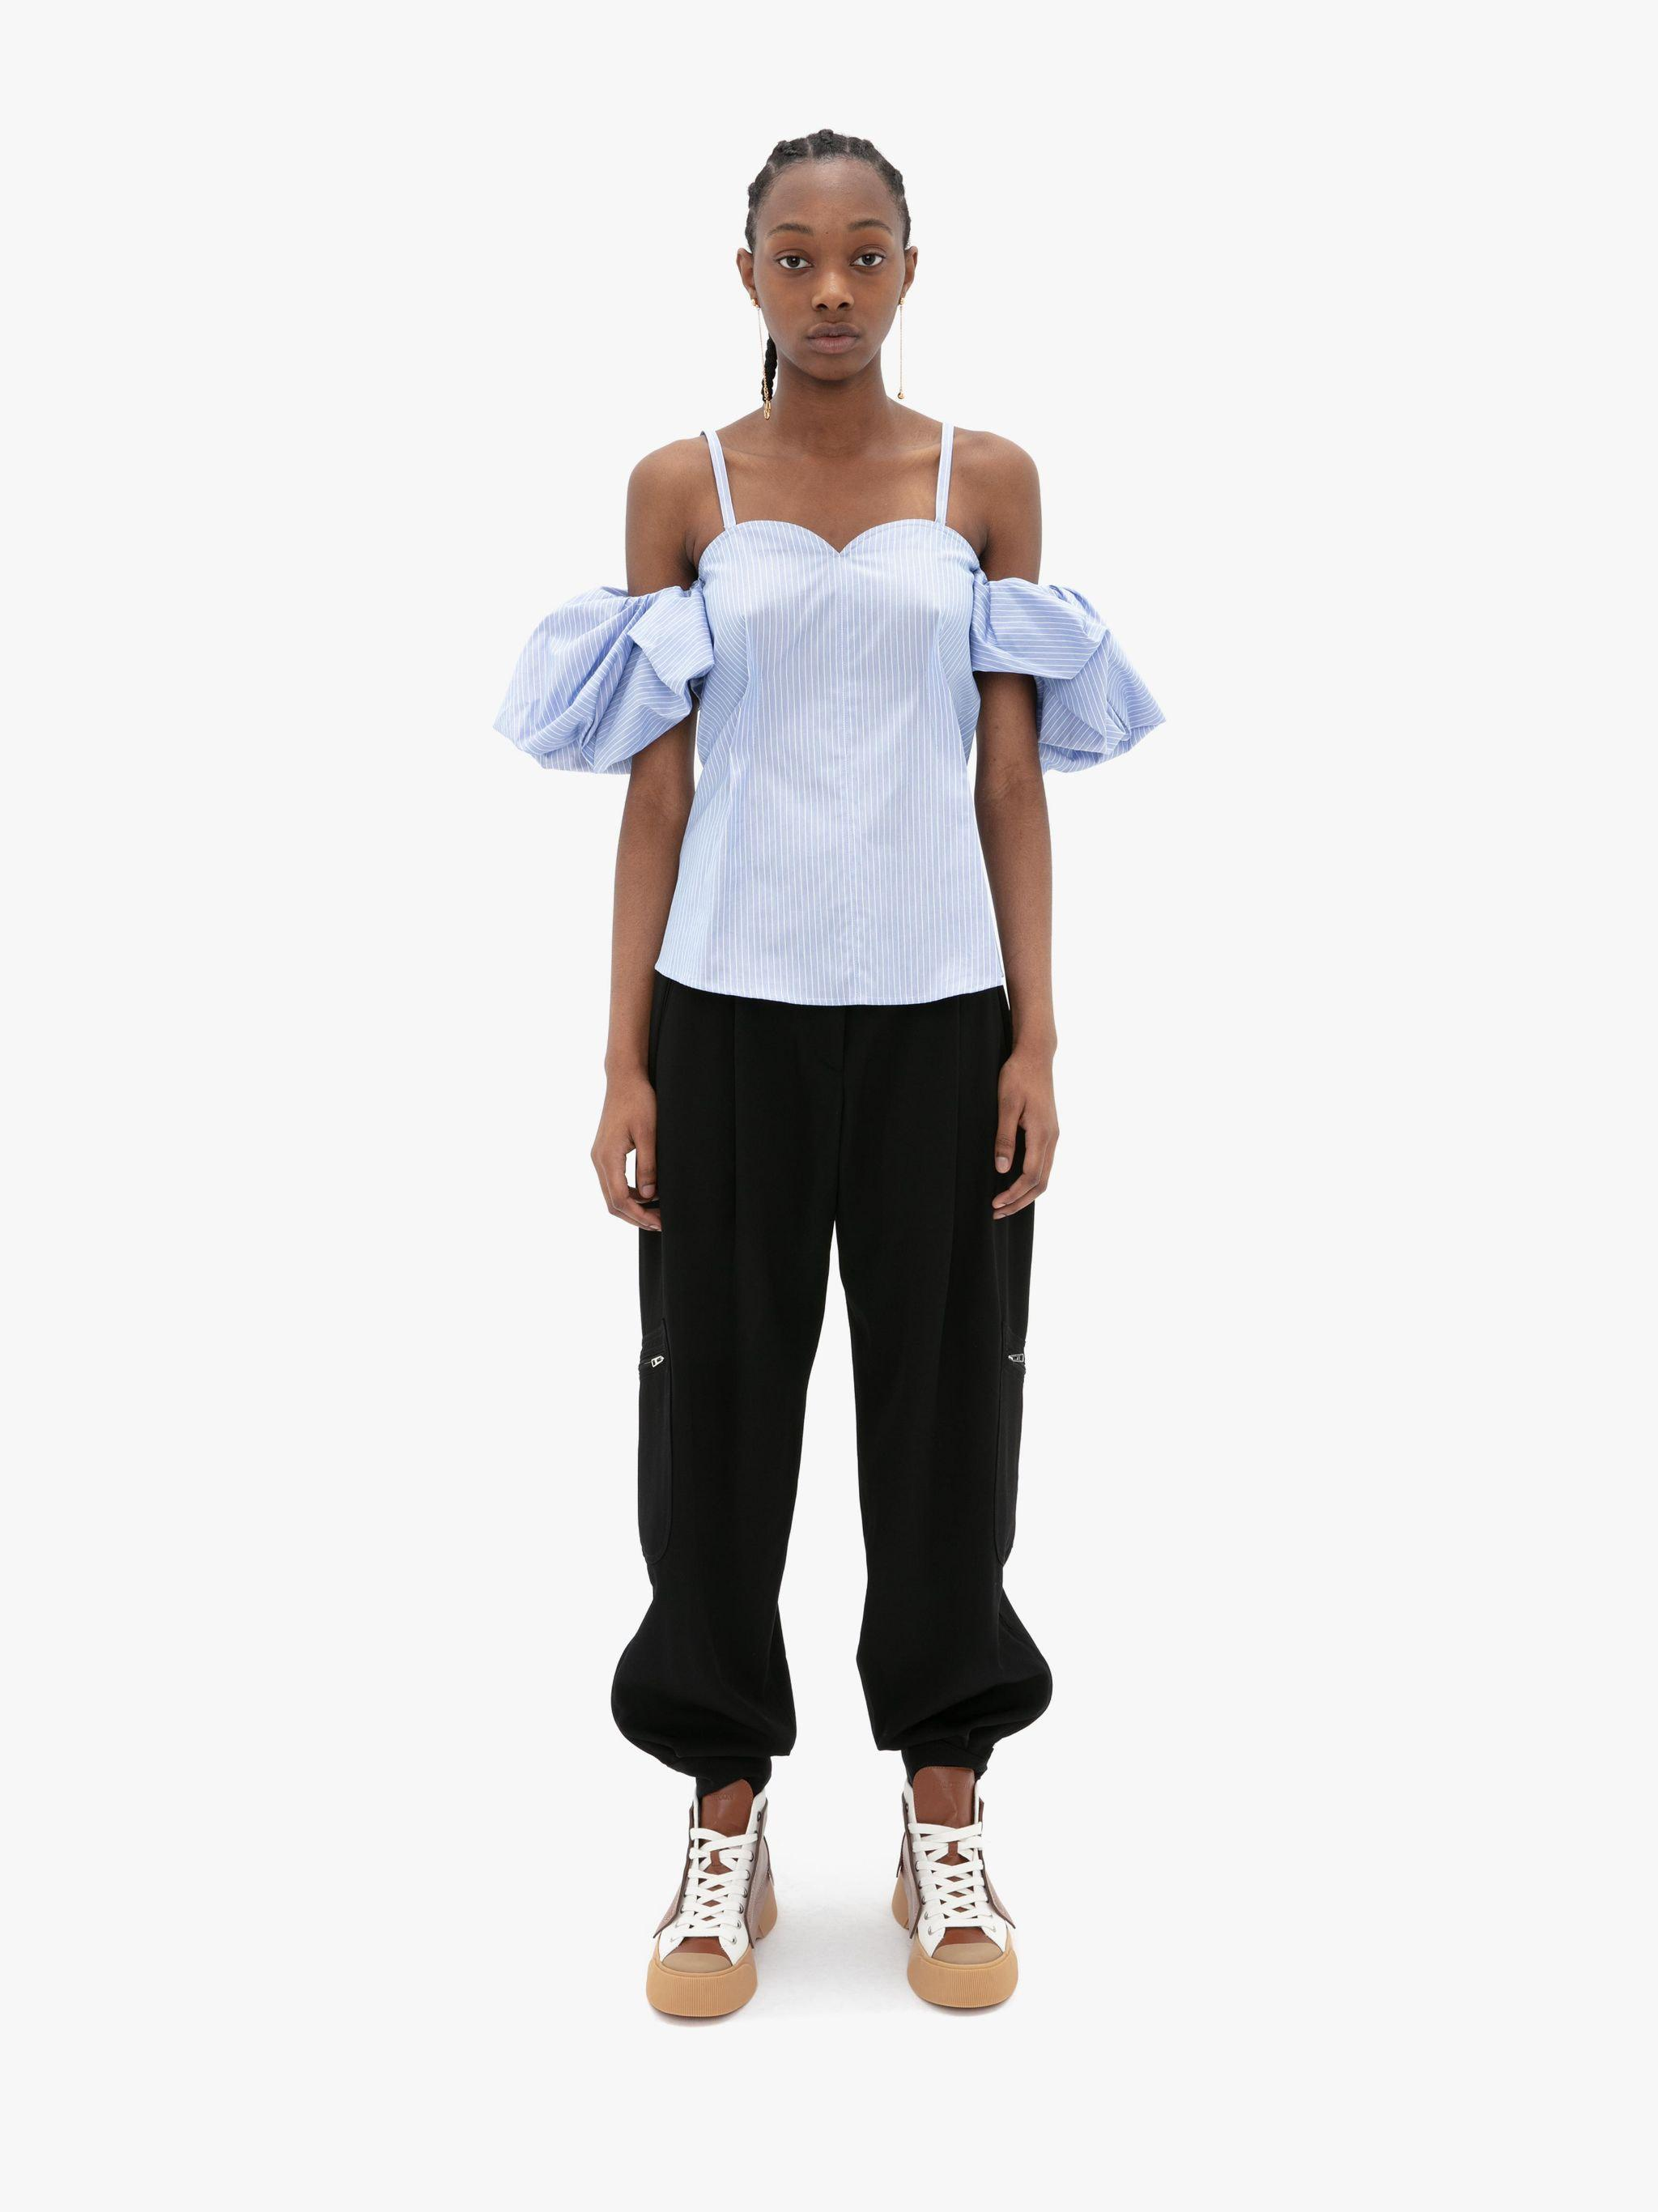 OFF THE SHOULDER CAMISOLE TOP